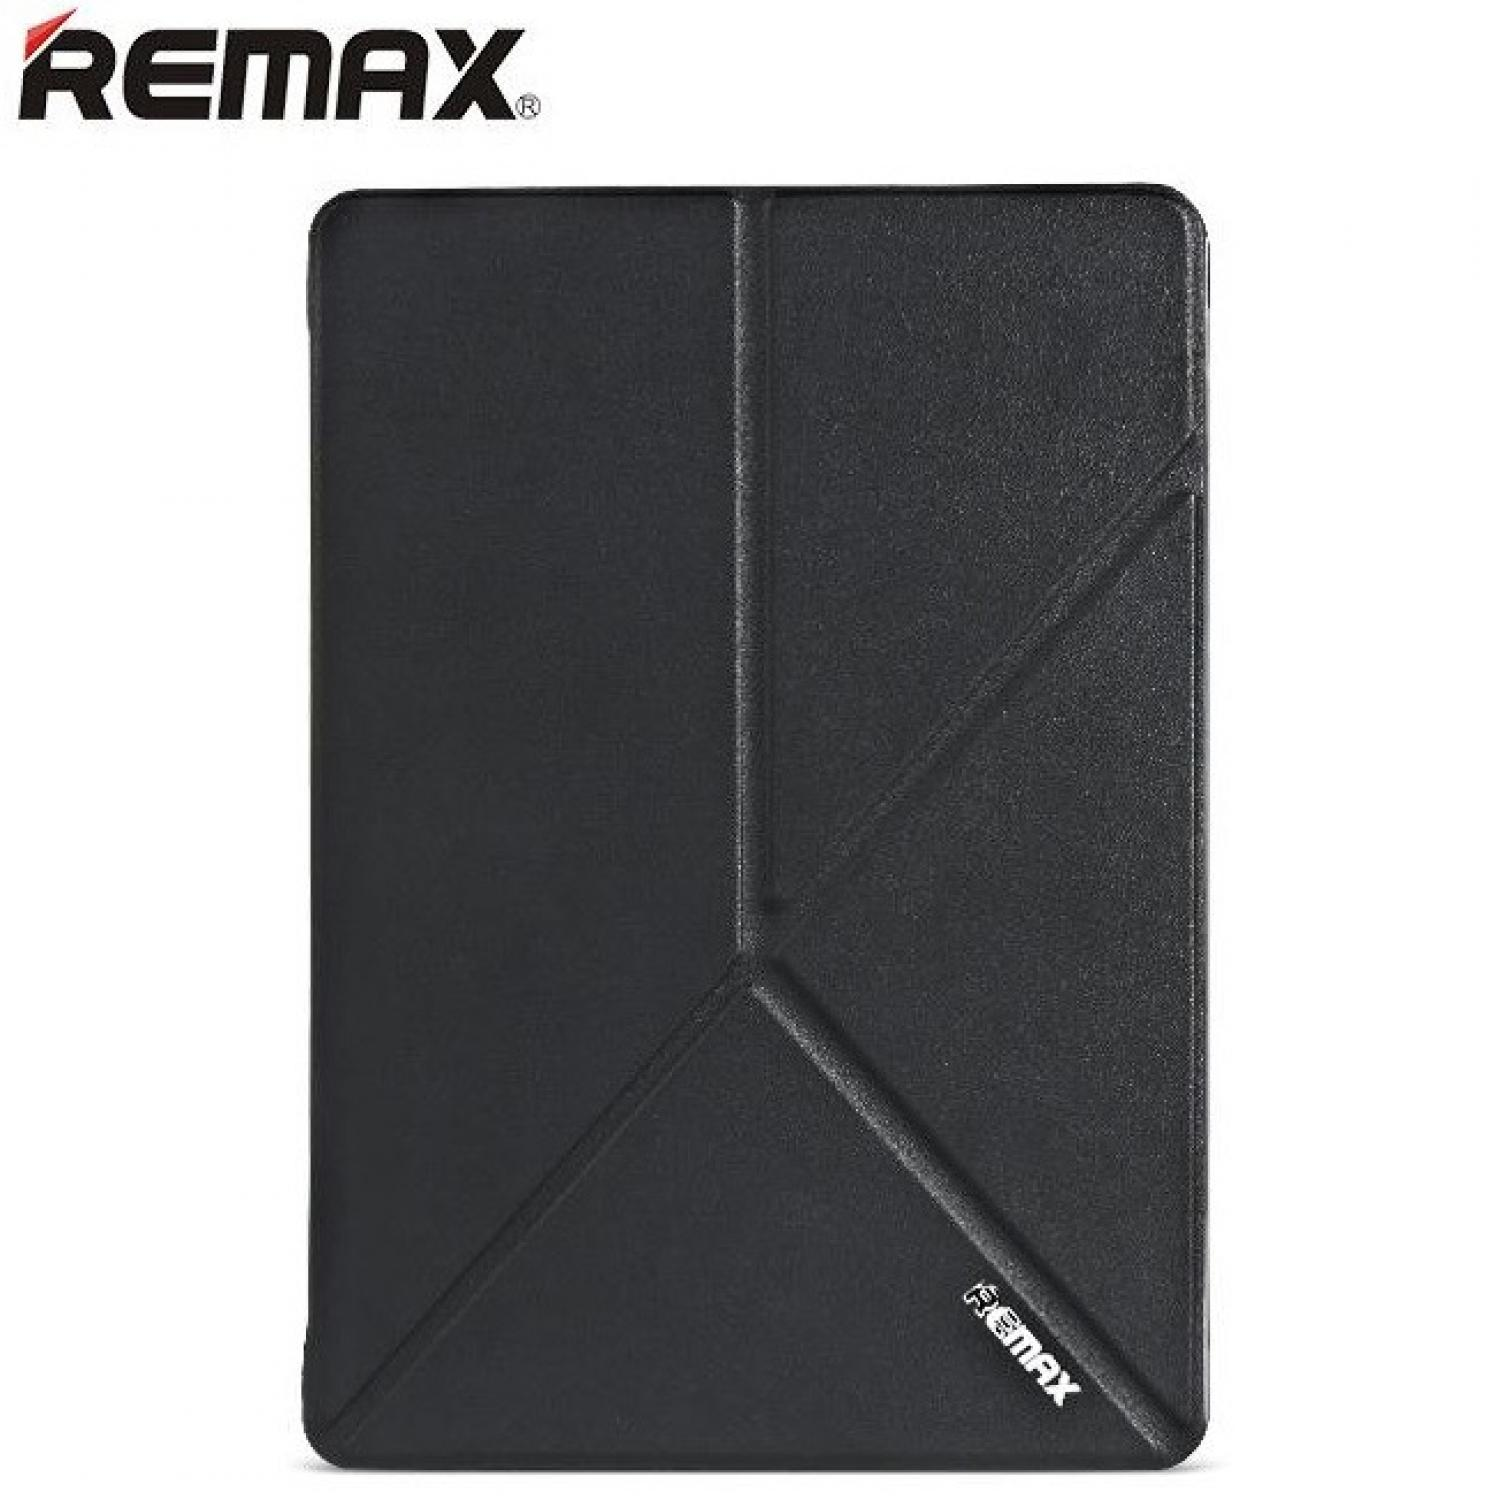 Remax Transformer Series Leather Case